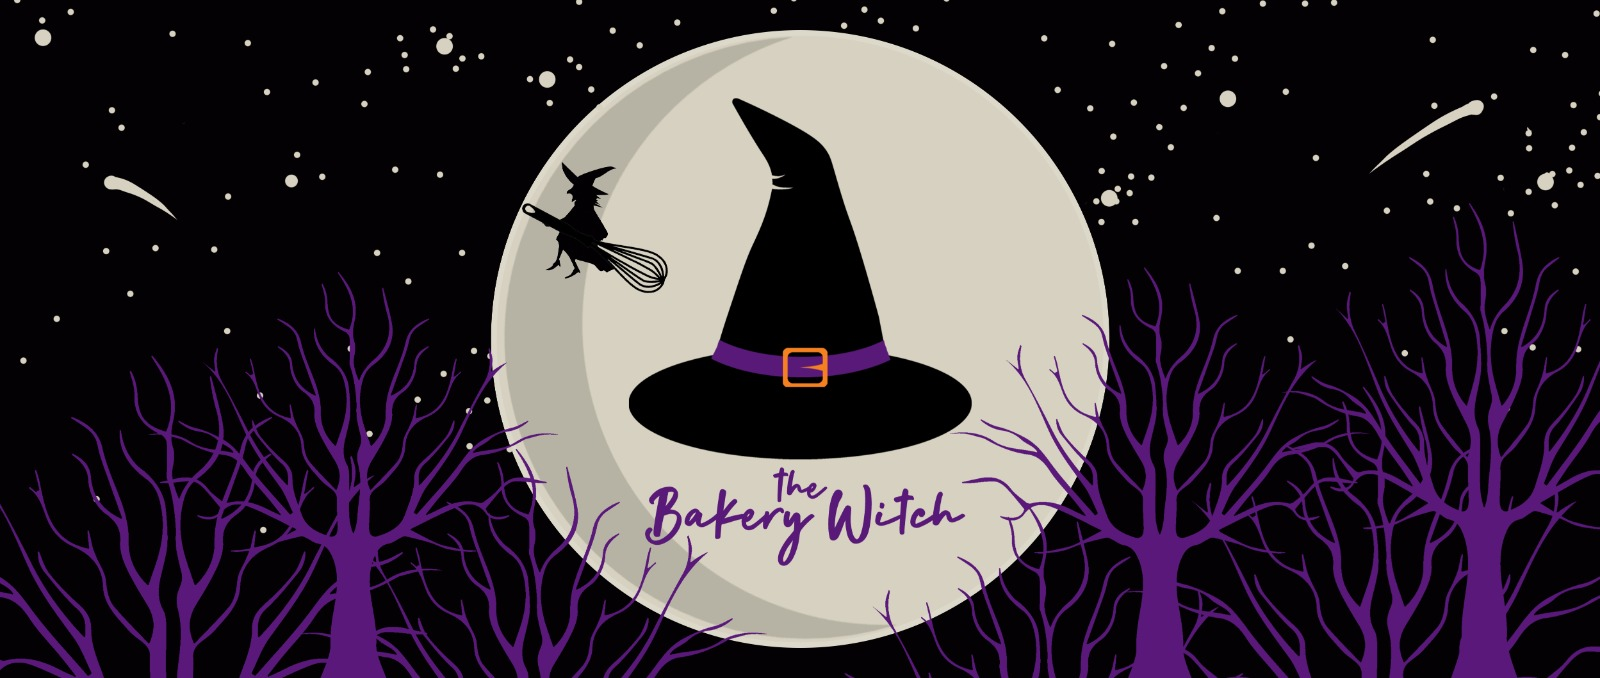 The Bakery Witch